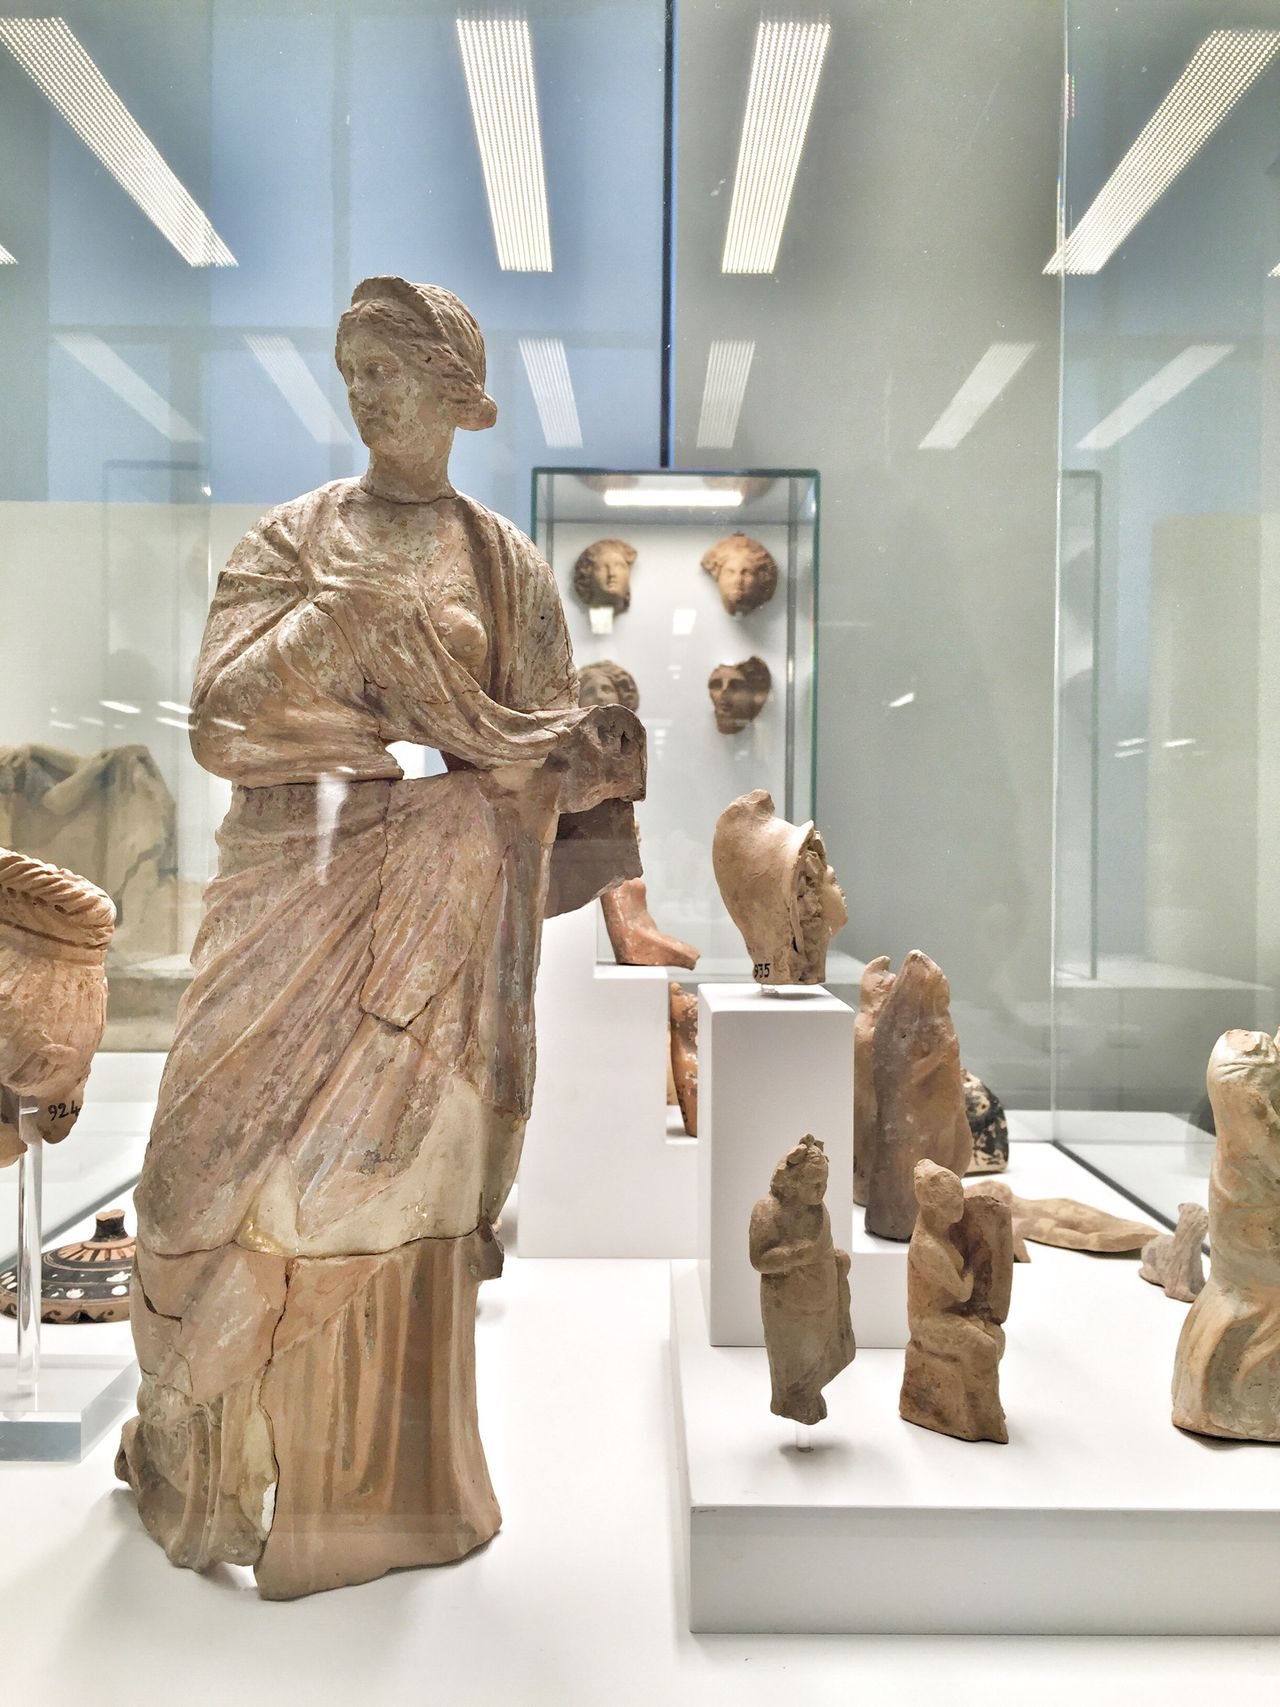 Magna Grecia Museum Check This Out Hello World Taking Photos Art, Drawing, Creativity Museum Magna Grecia ReggioCalabria Greek Ancient Culture Ancient Civilization Ancient Sculptures Sculpture Statues ArtWork Art Statue History Taking Photos